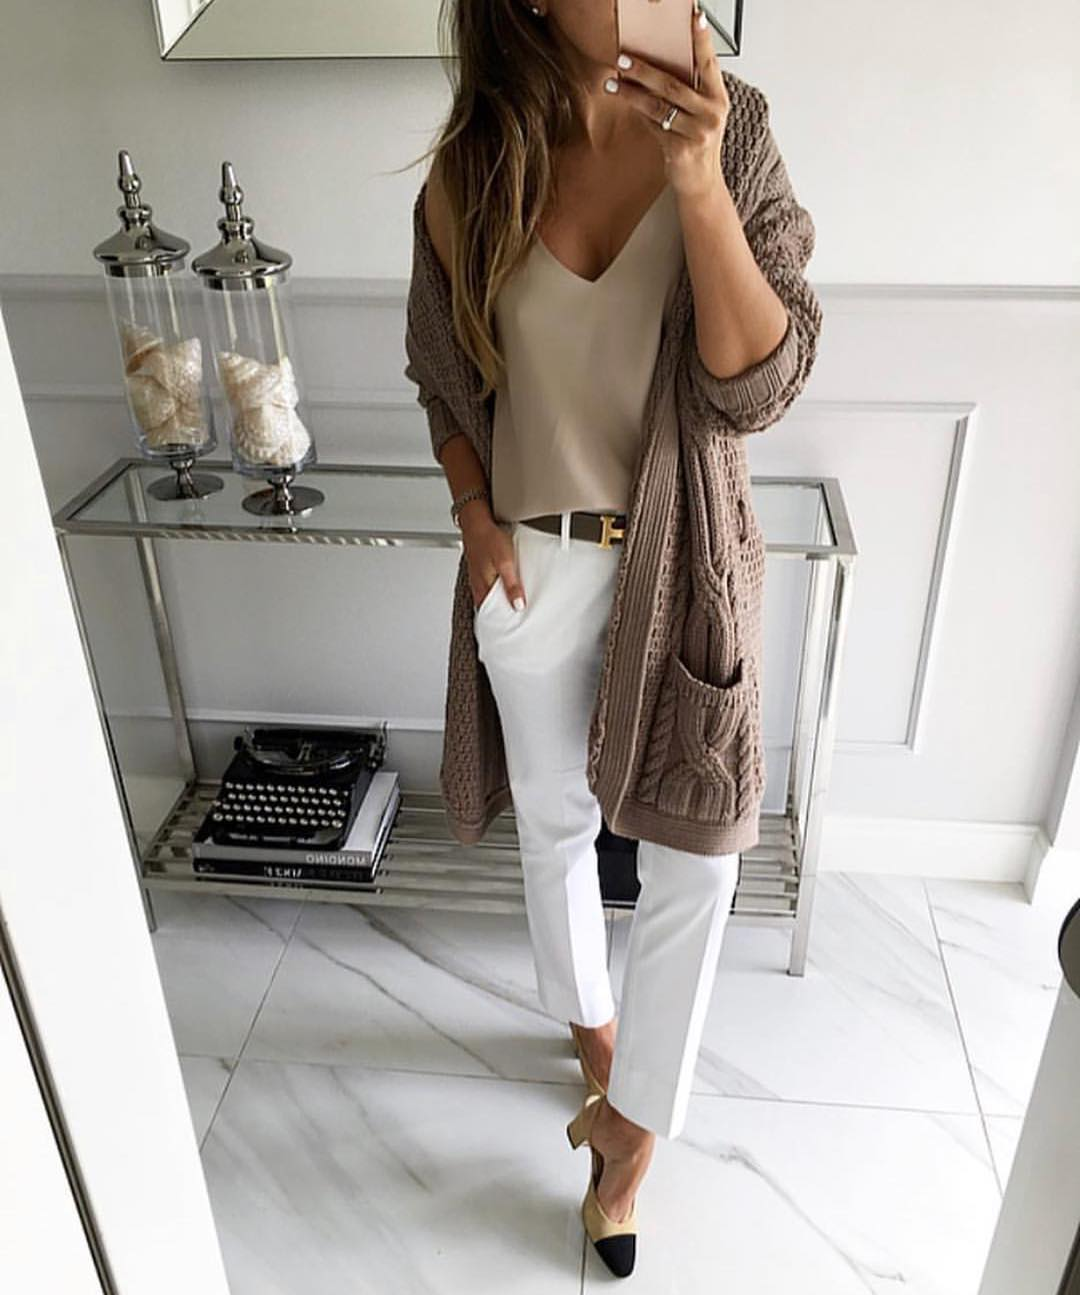 Long Beige Cardigan And Tailored White Pants For Fall 2020